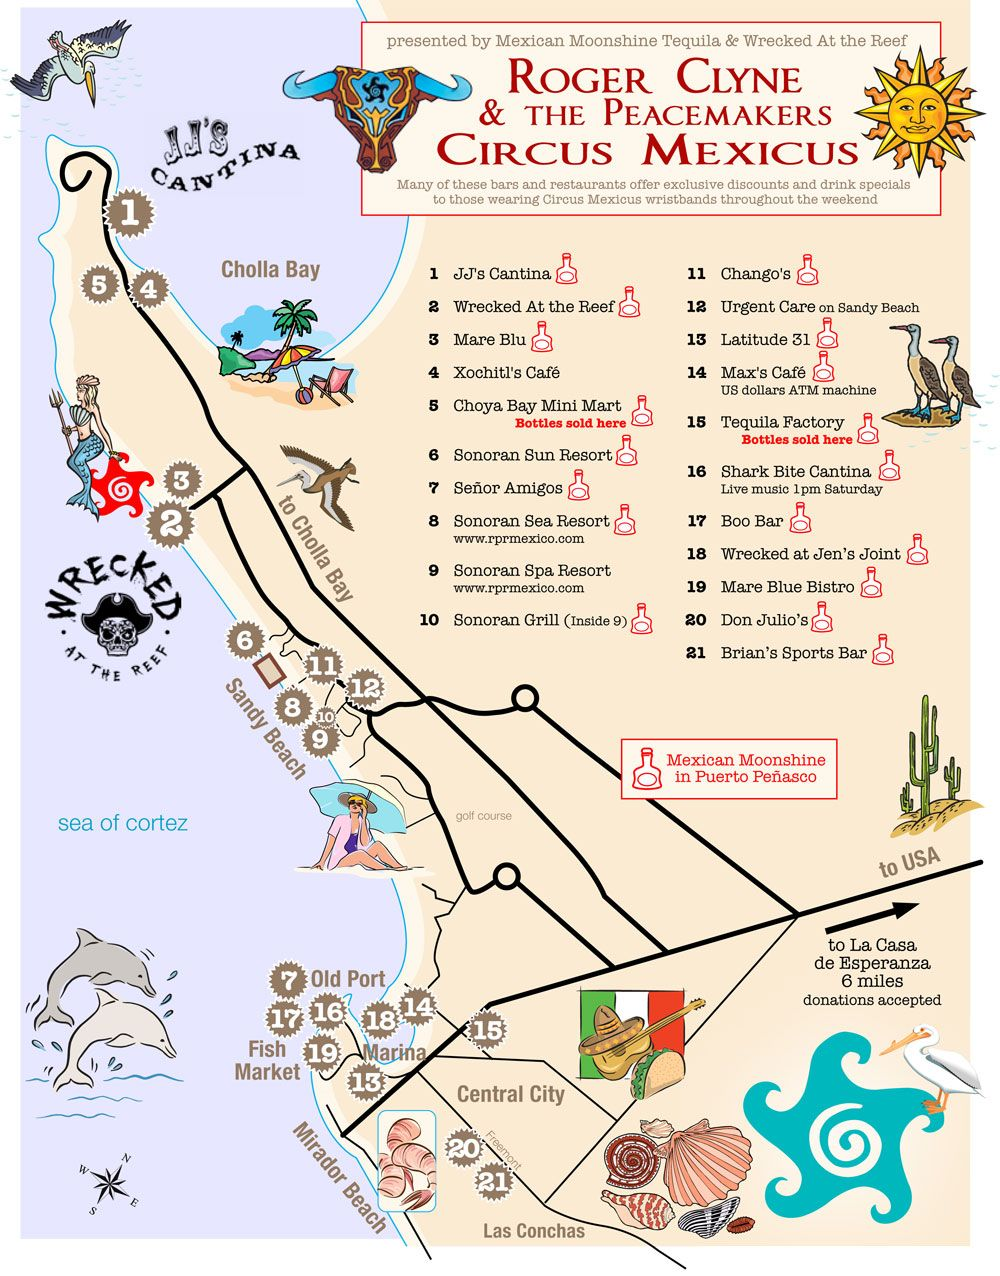 Sandy Beach Map Rocky Point Circus Mexicus RCPM Pinterest - Map usa beaches